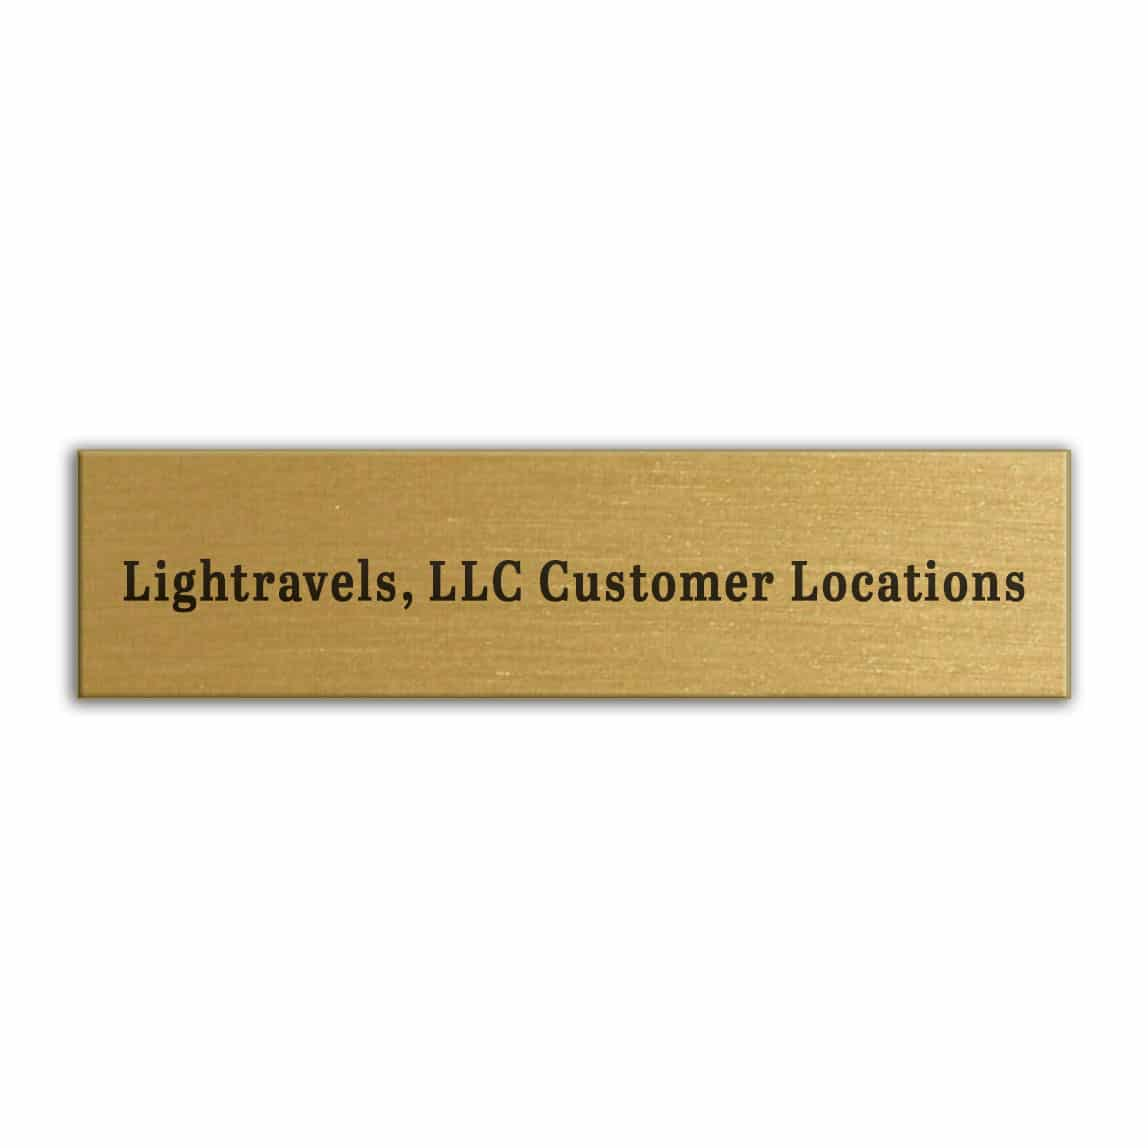 lightravels-personalized-plaque-gold-4x1-01